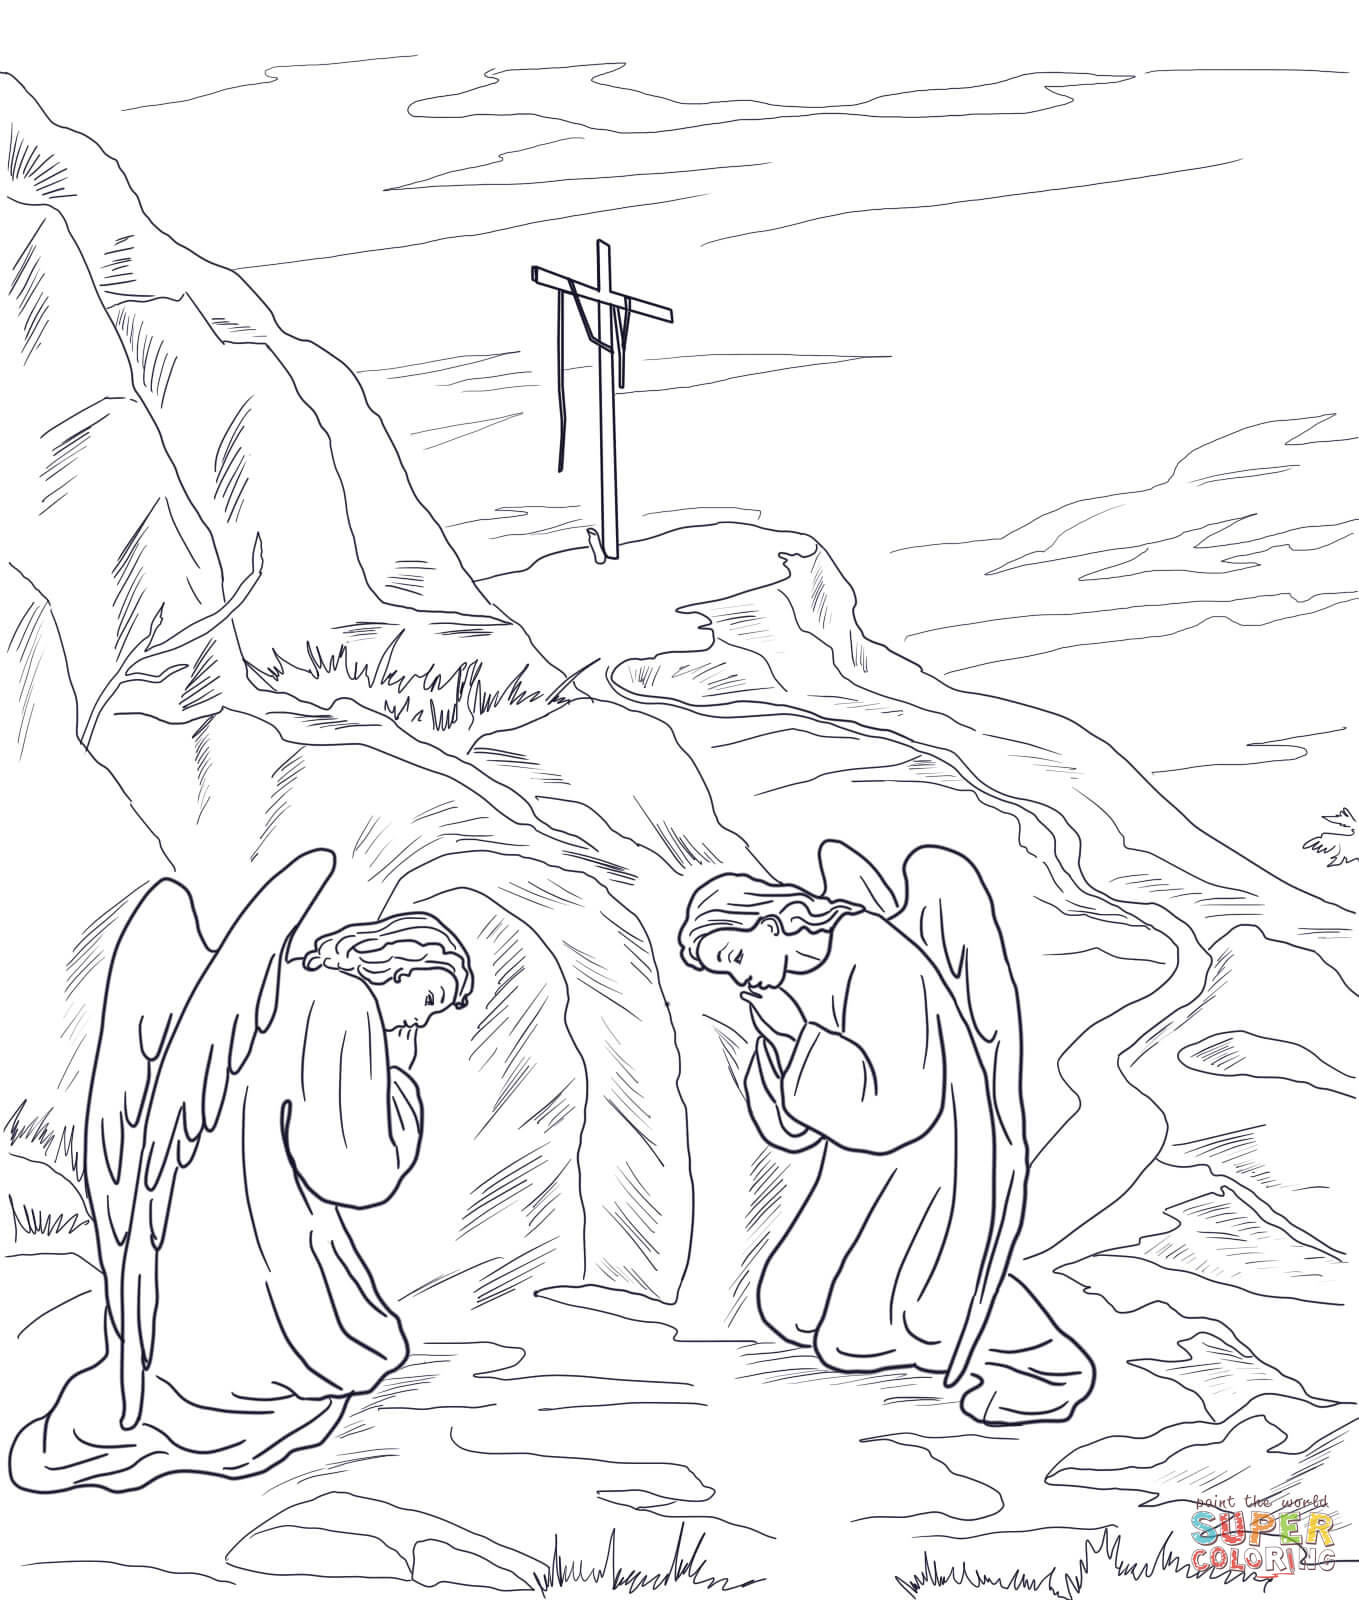 120 Empty Tomb free clipart.